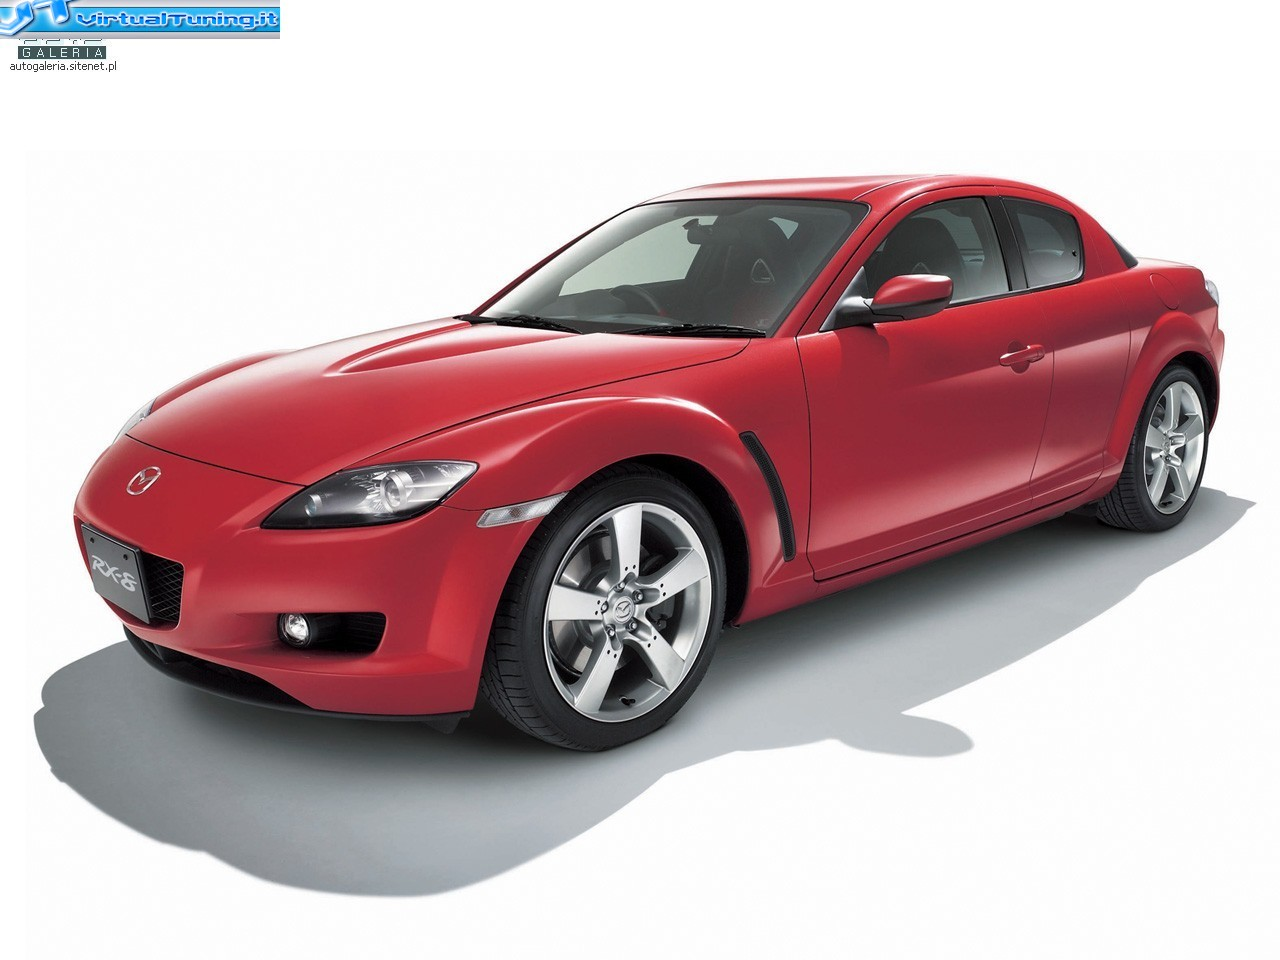 mazda rx8 by ndave virtualtuning it. Black Bedroom Furniture Sets. Home Design Ideas